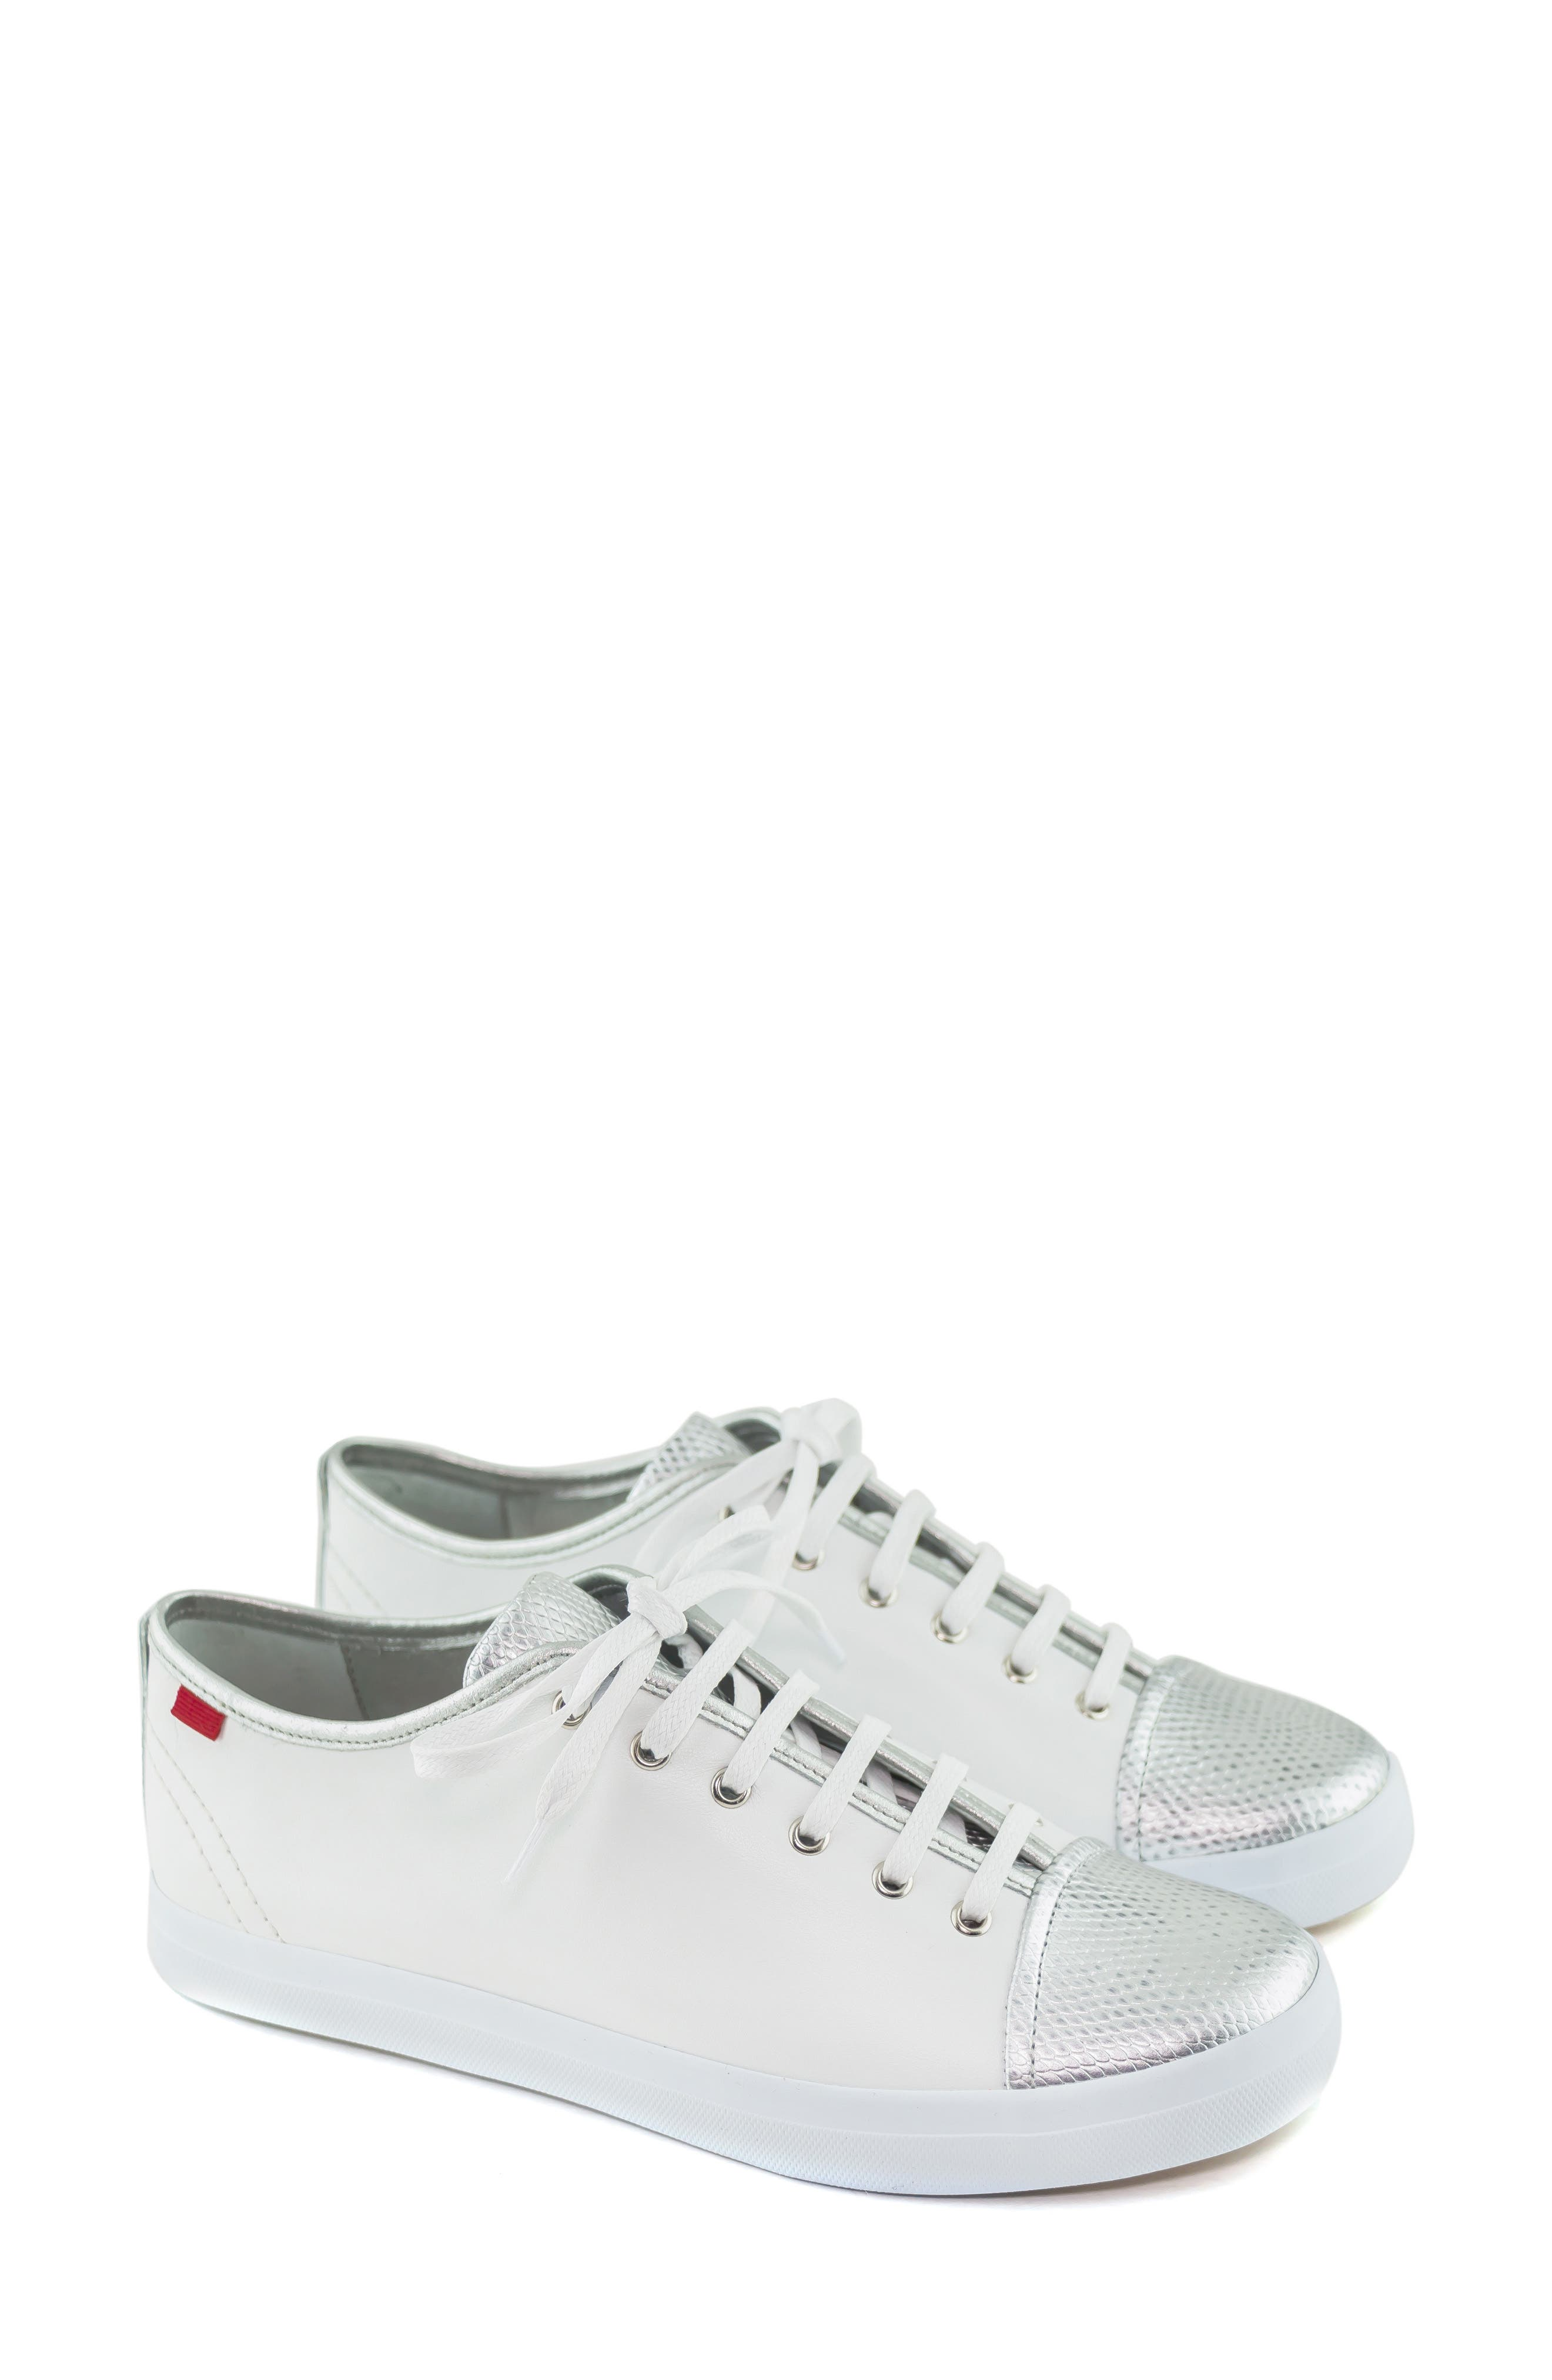 MARC JOSEPH NEW YORK, Bleecker Street Sneaker, Alternate thumbnail 7, color, WHITE/ GIPSY SILVER LEATHER